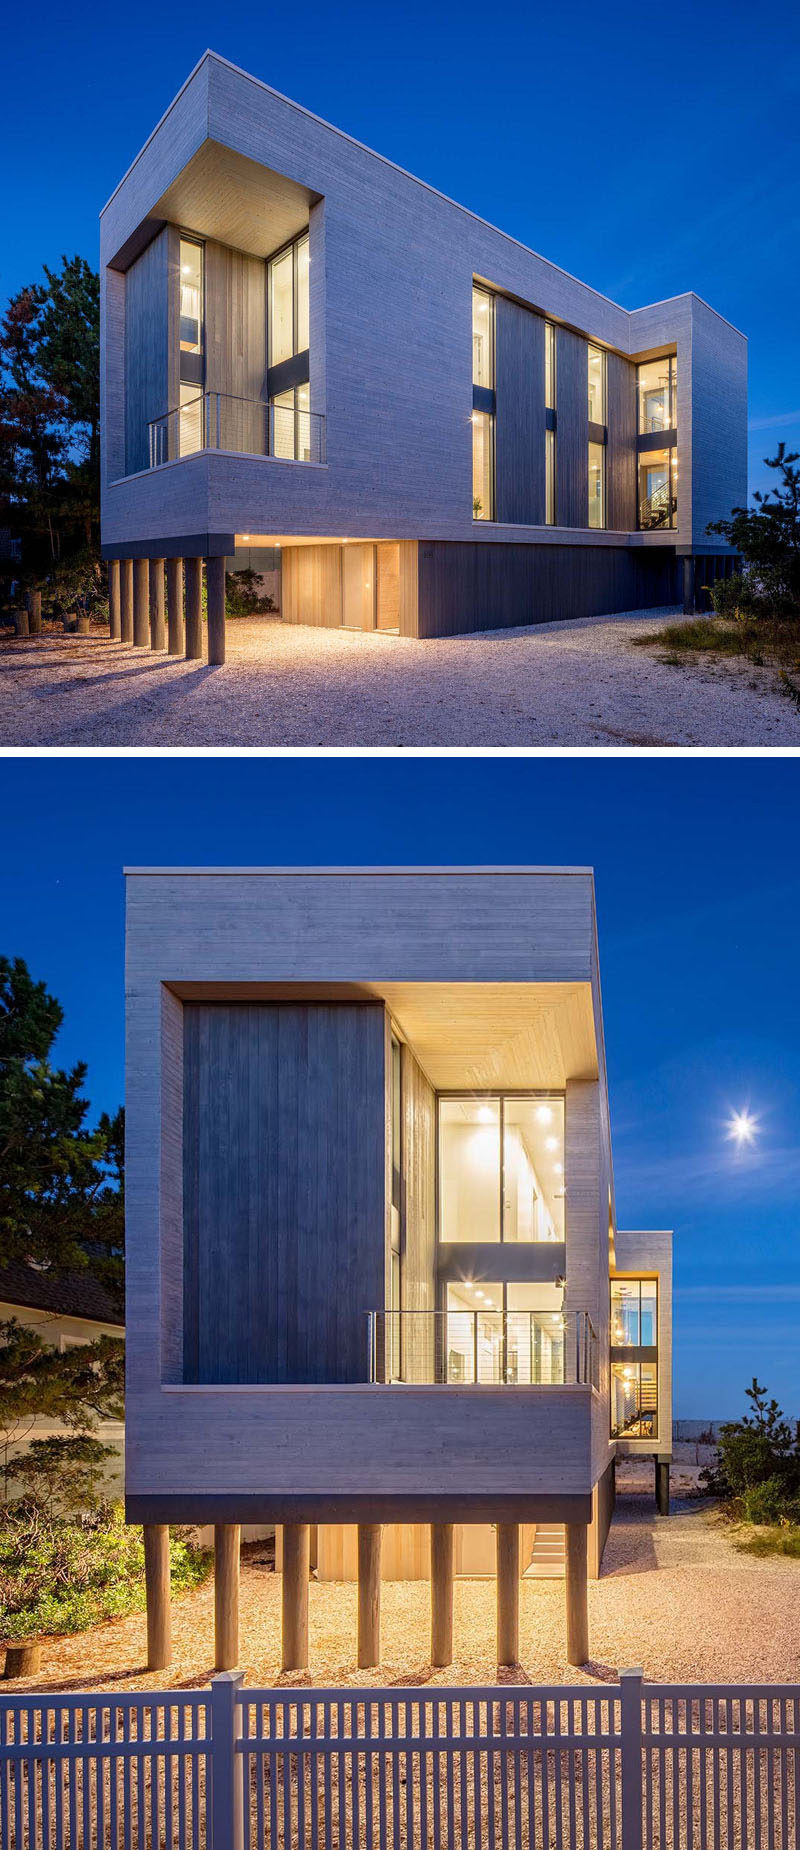 At night this modern beach house is lit up like a lantern with vertical windows allowing the light to shine through.